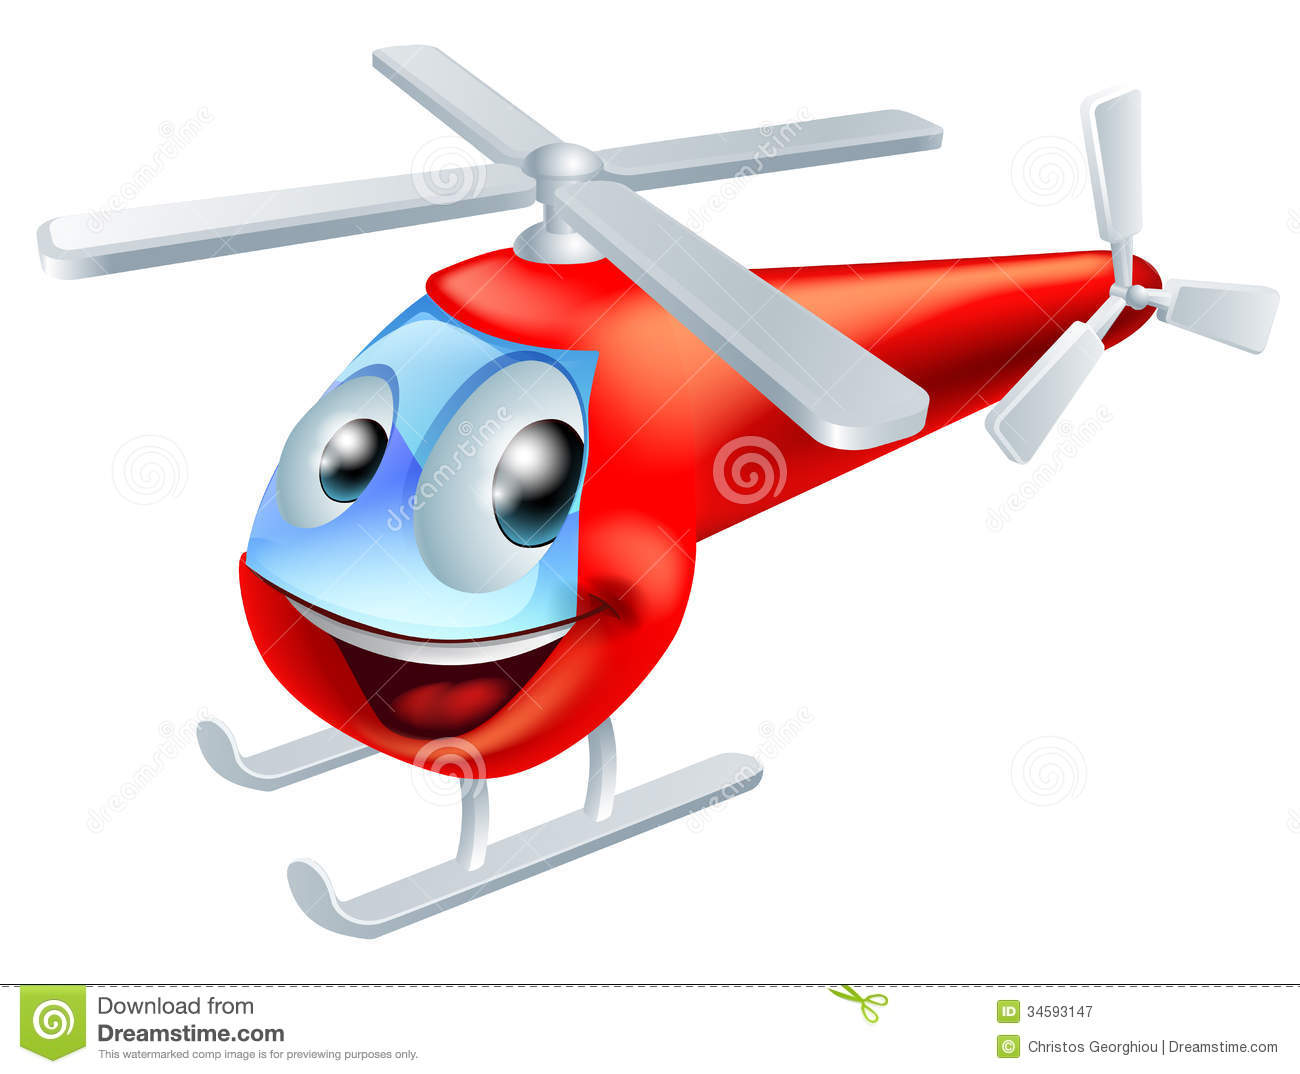 Helicopter cartoon character